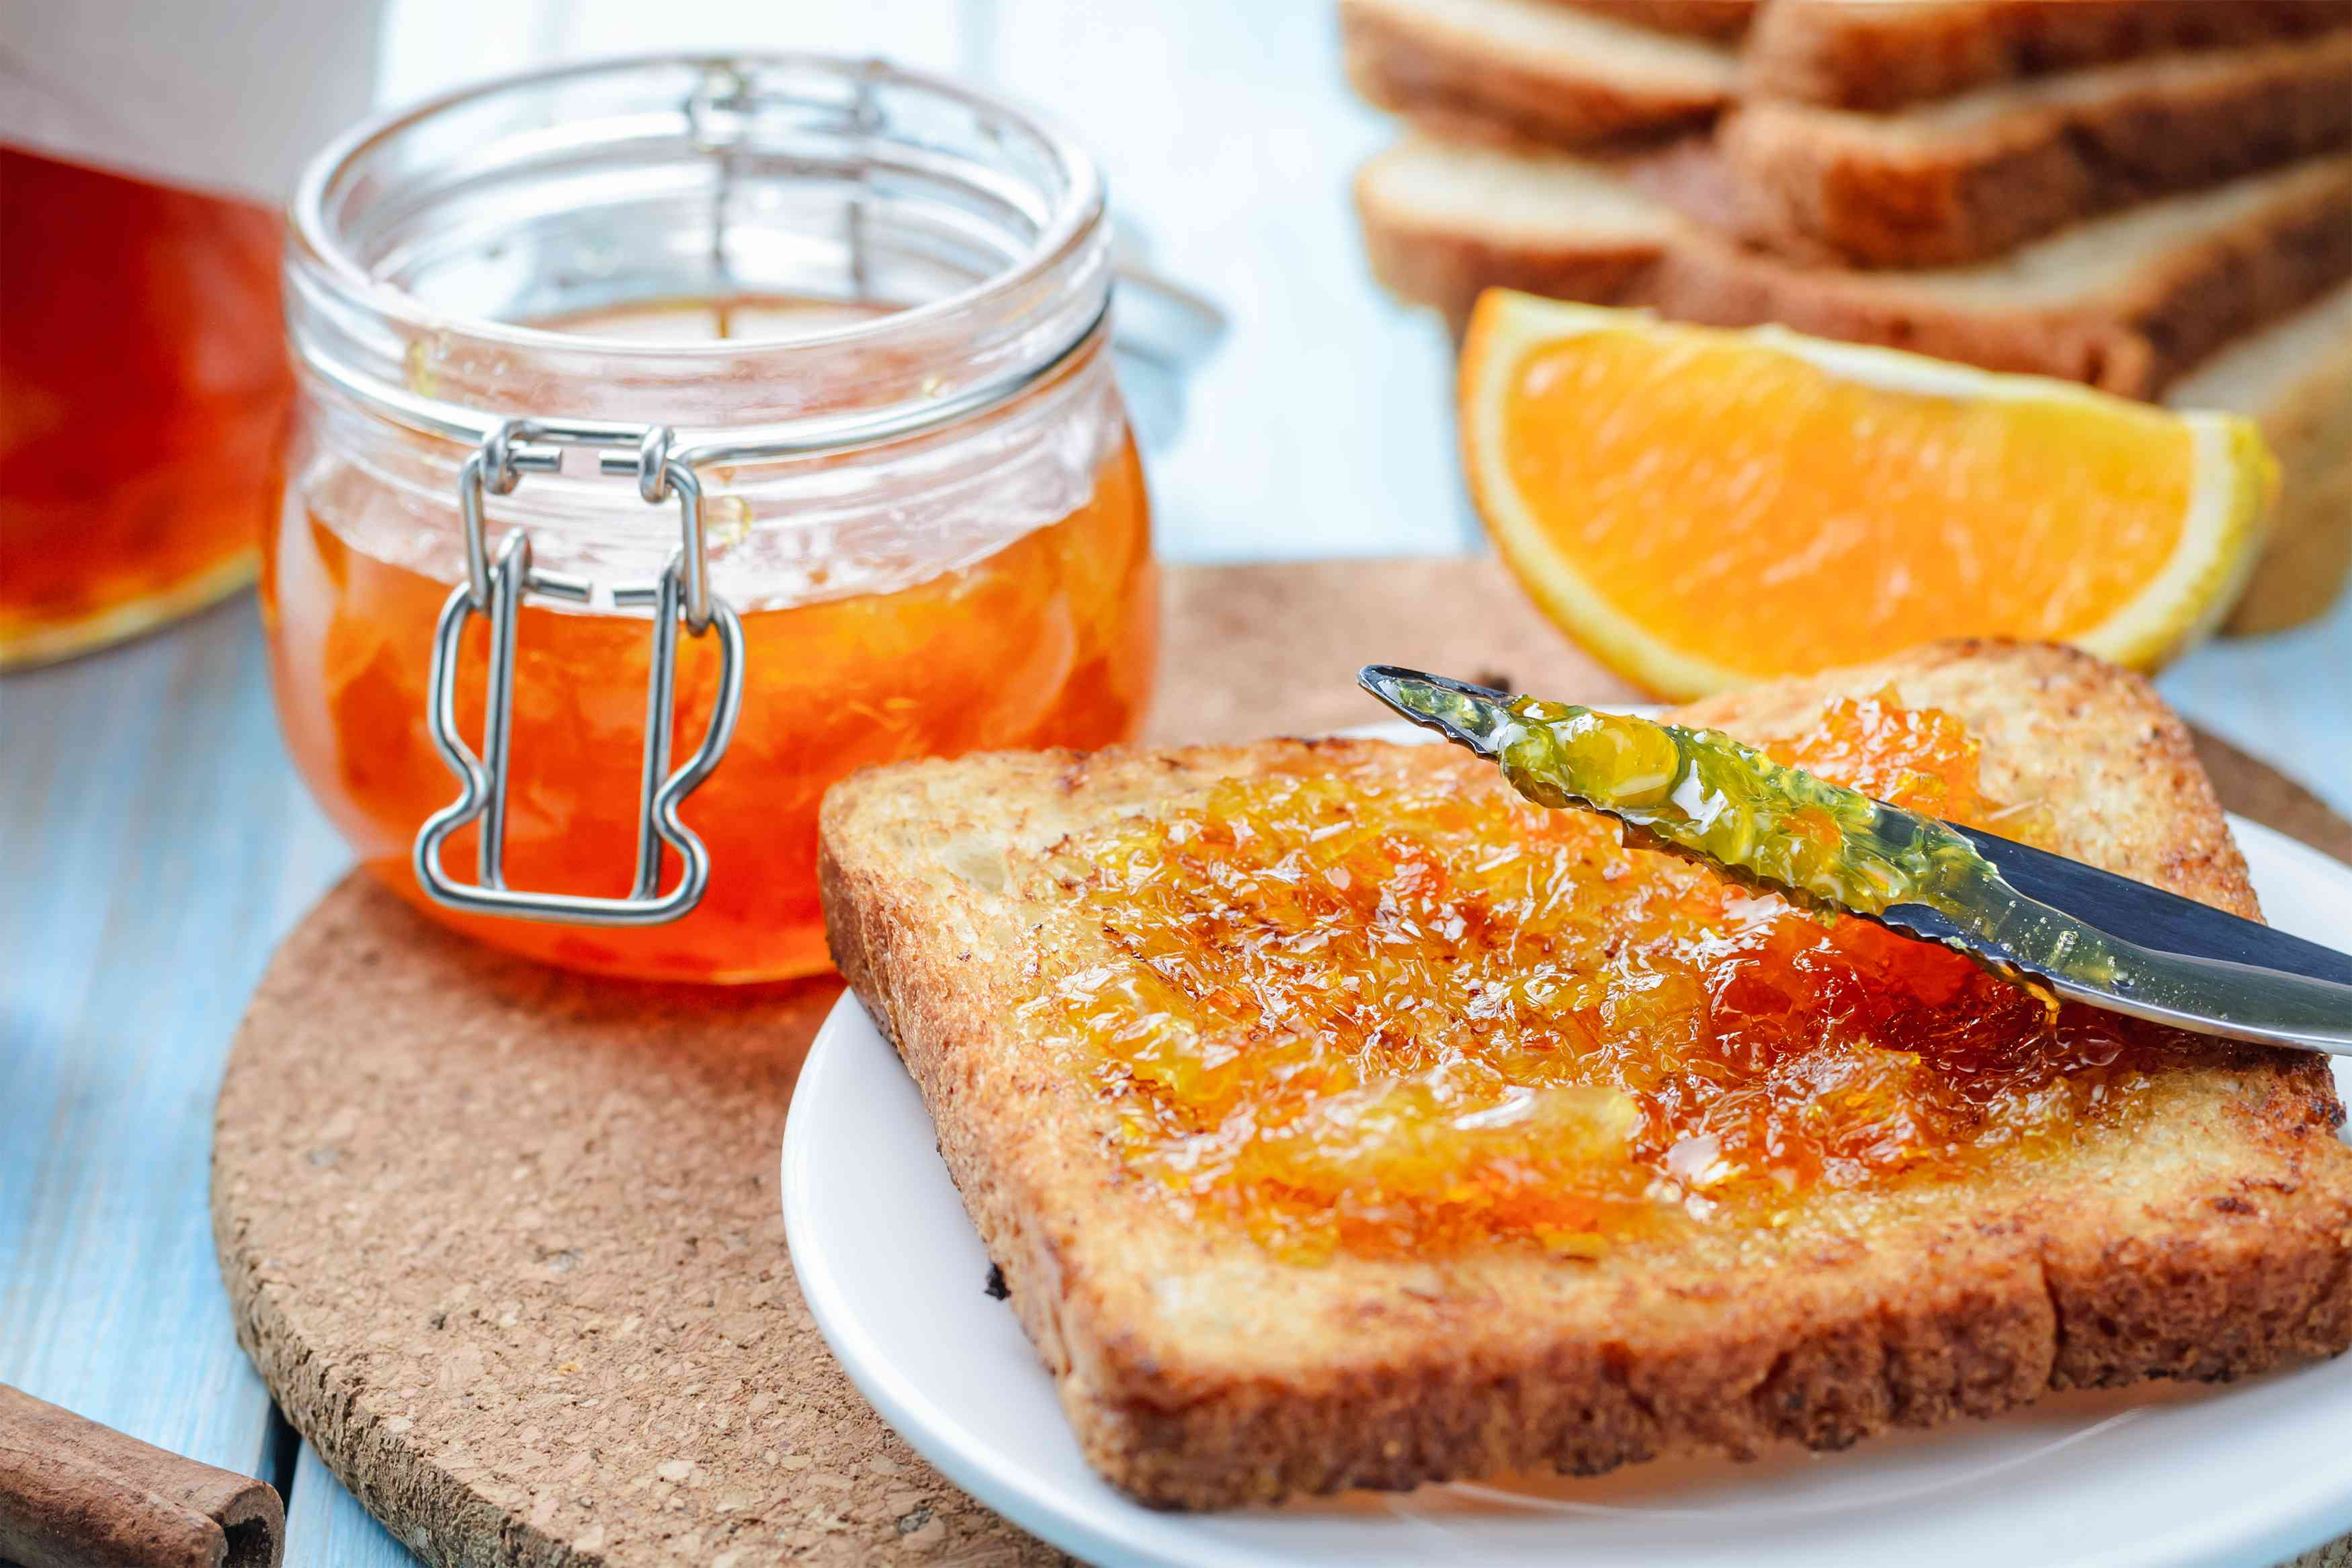 Slices of toasted bread with orange jam for breakfast